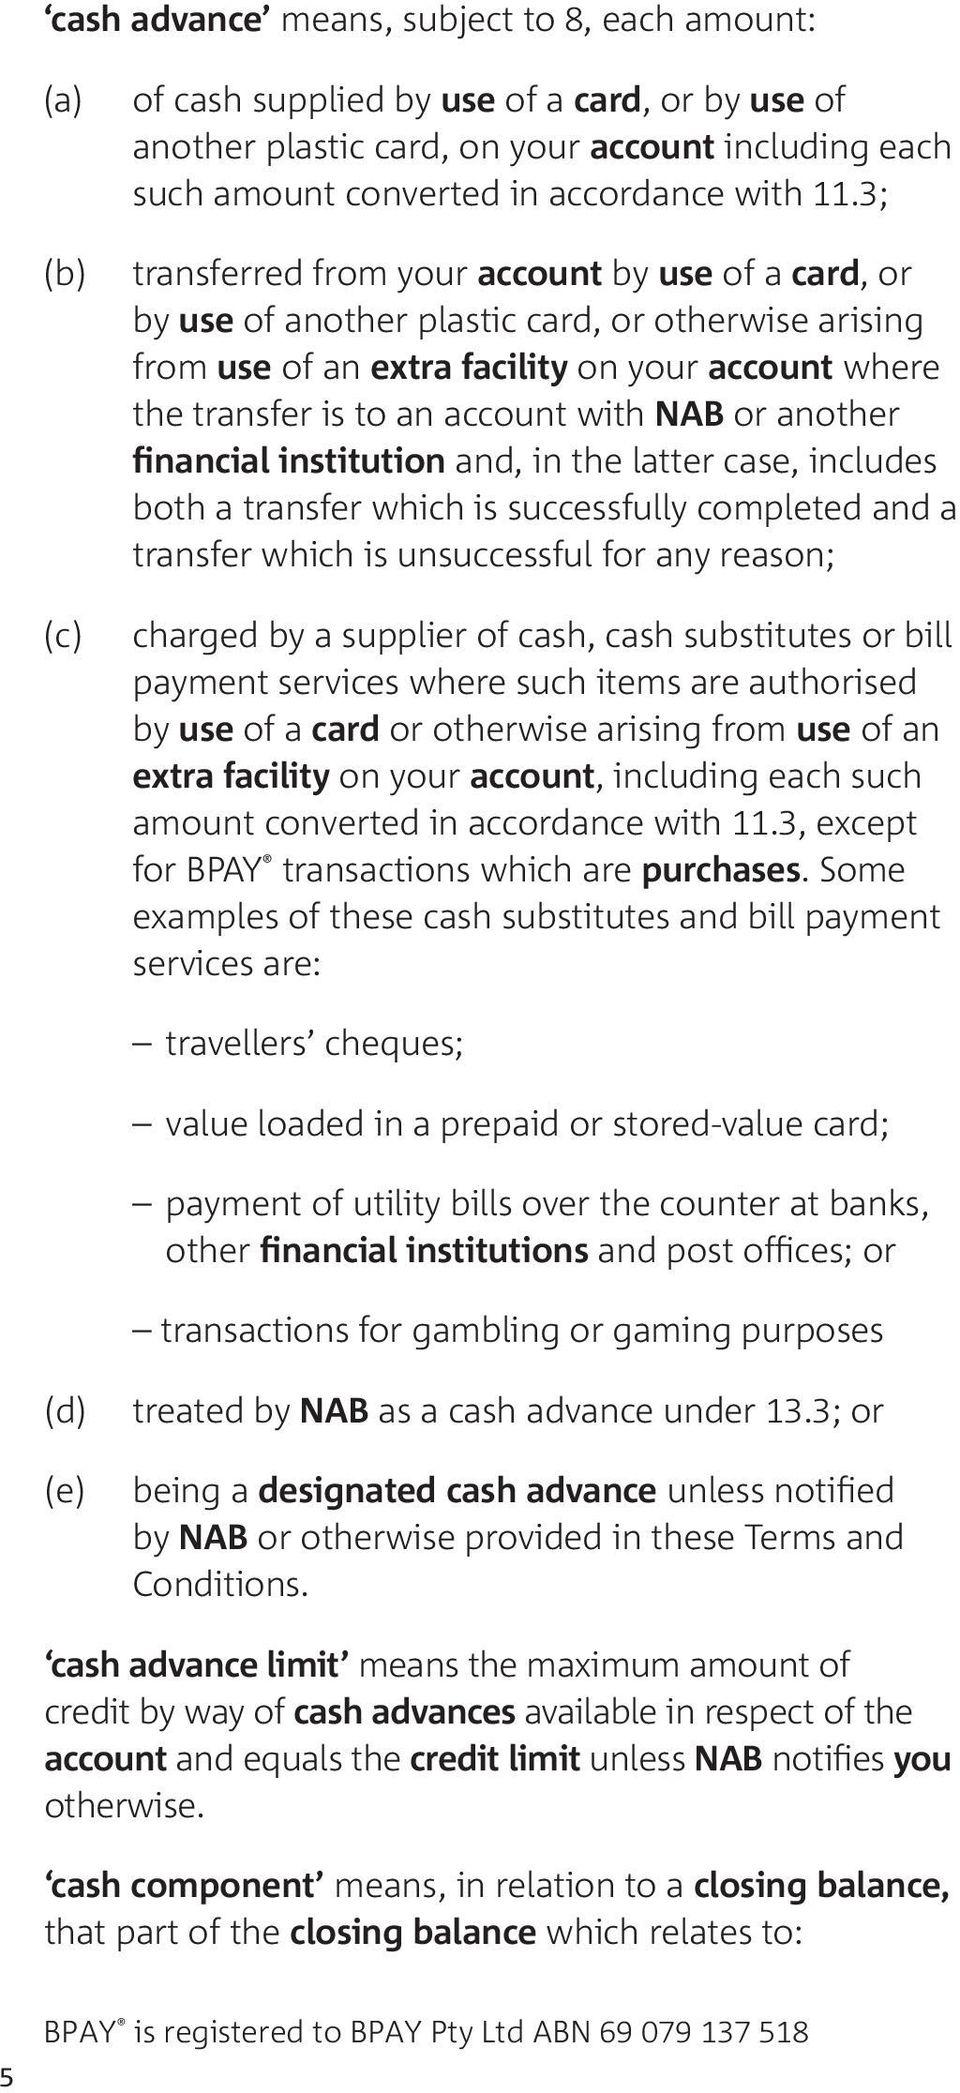 3; transferred from your account by use of a card, or by use of another plastic card, or otherwise arising from use of an extra facility on your account where the transfer is to an account with NAB